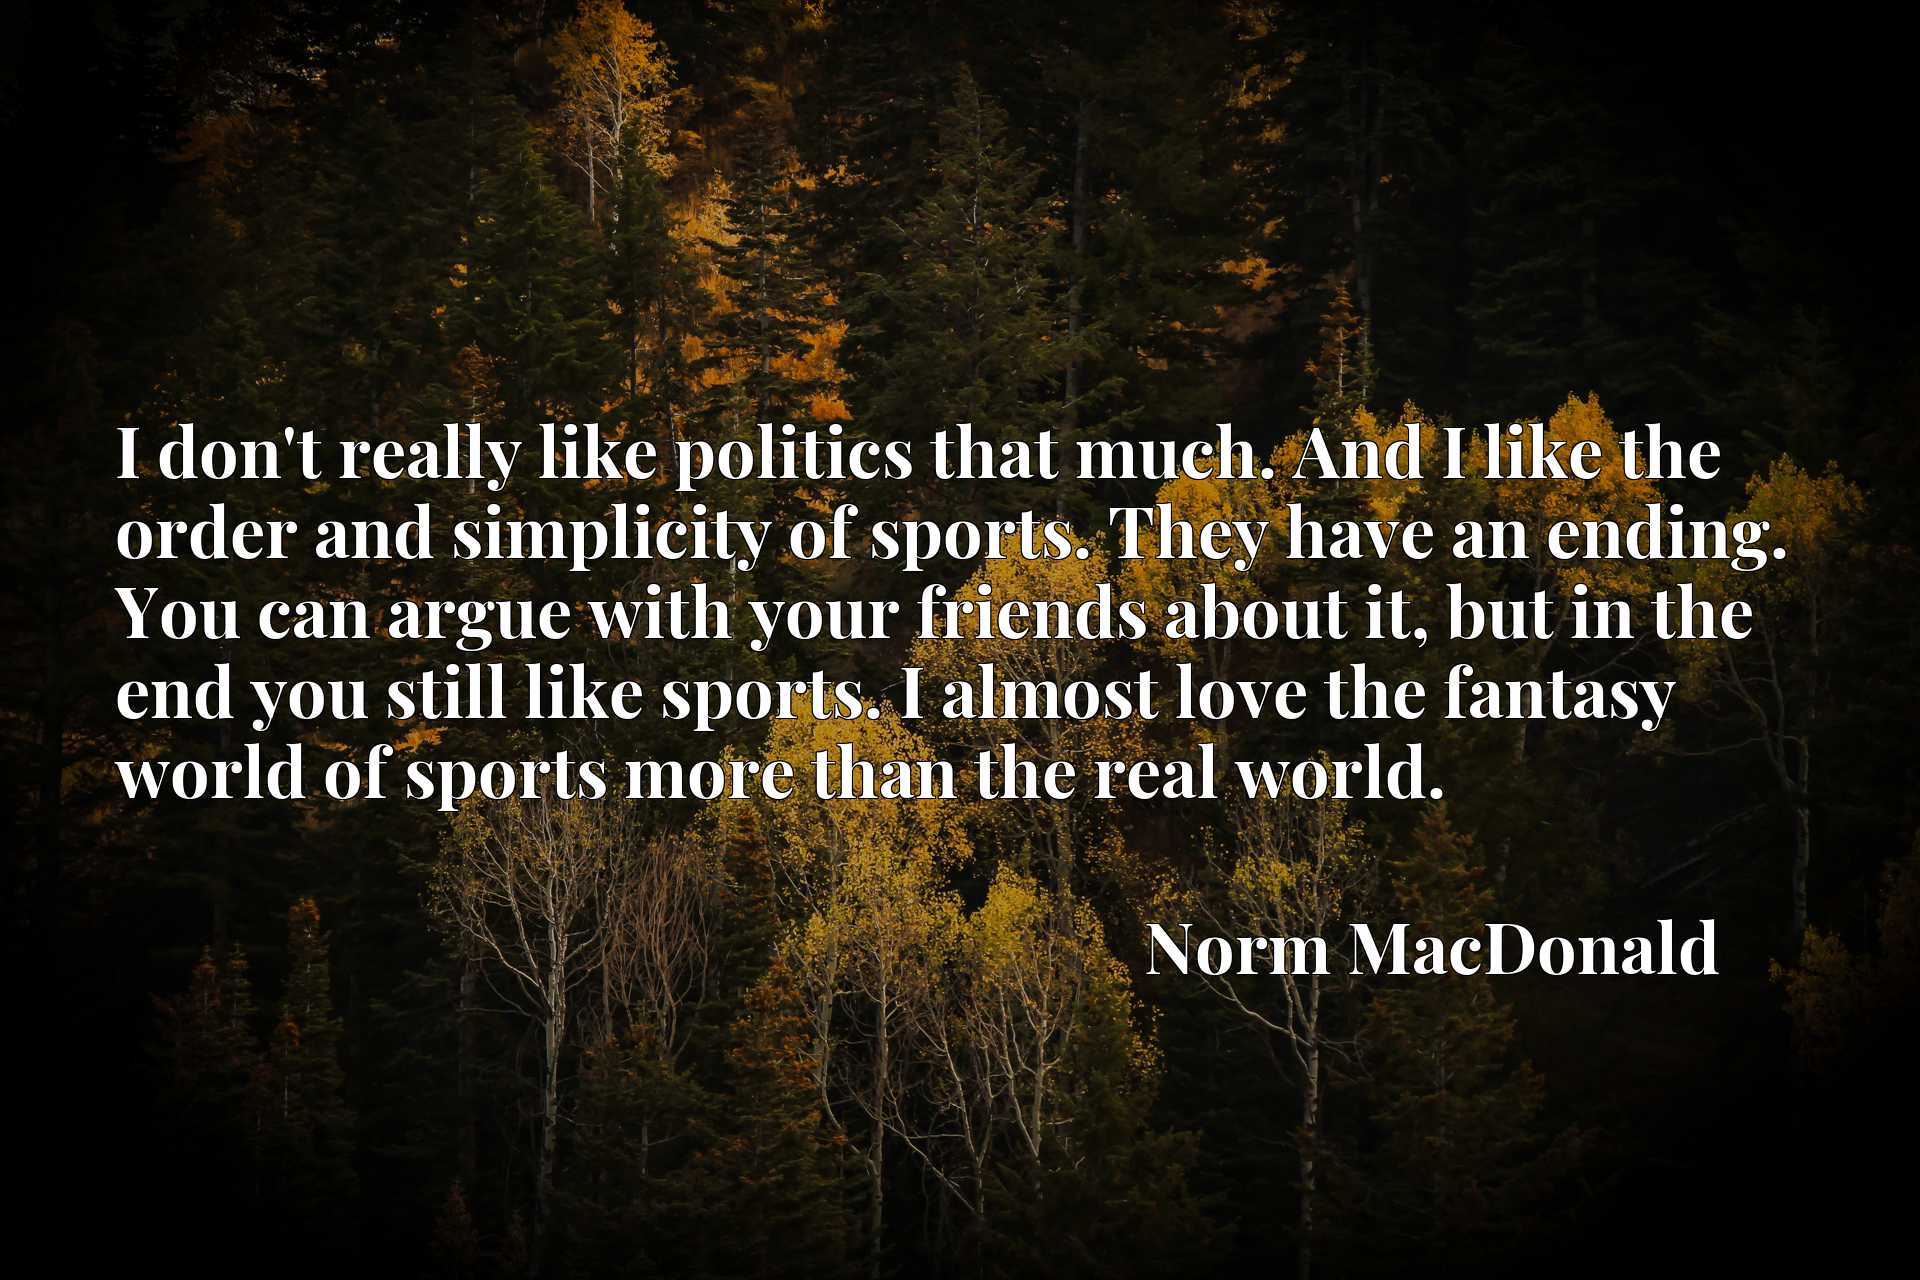 I don't really like politics that much. And I like the order and simplicity of sports. They have an ending. You can argue with your friends about it, but in the end you still like sports. I almost love the fantasy world of sports more than the real world.